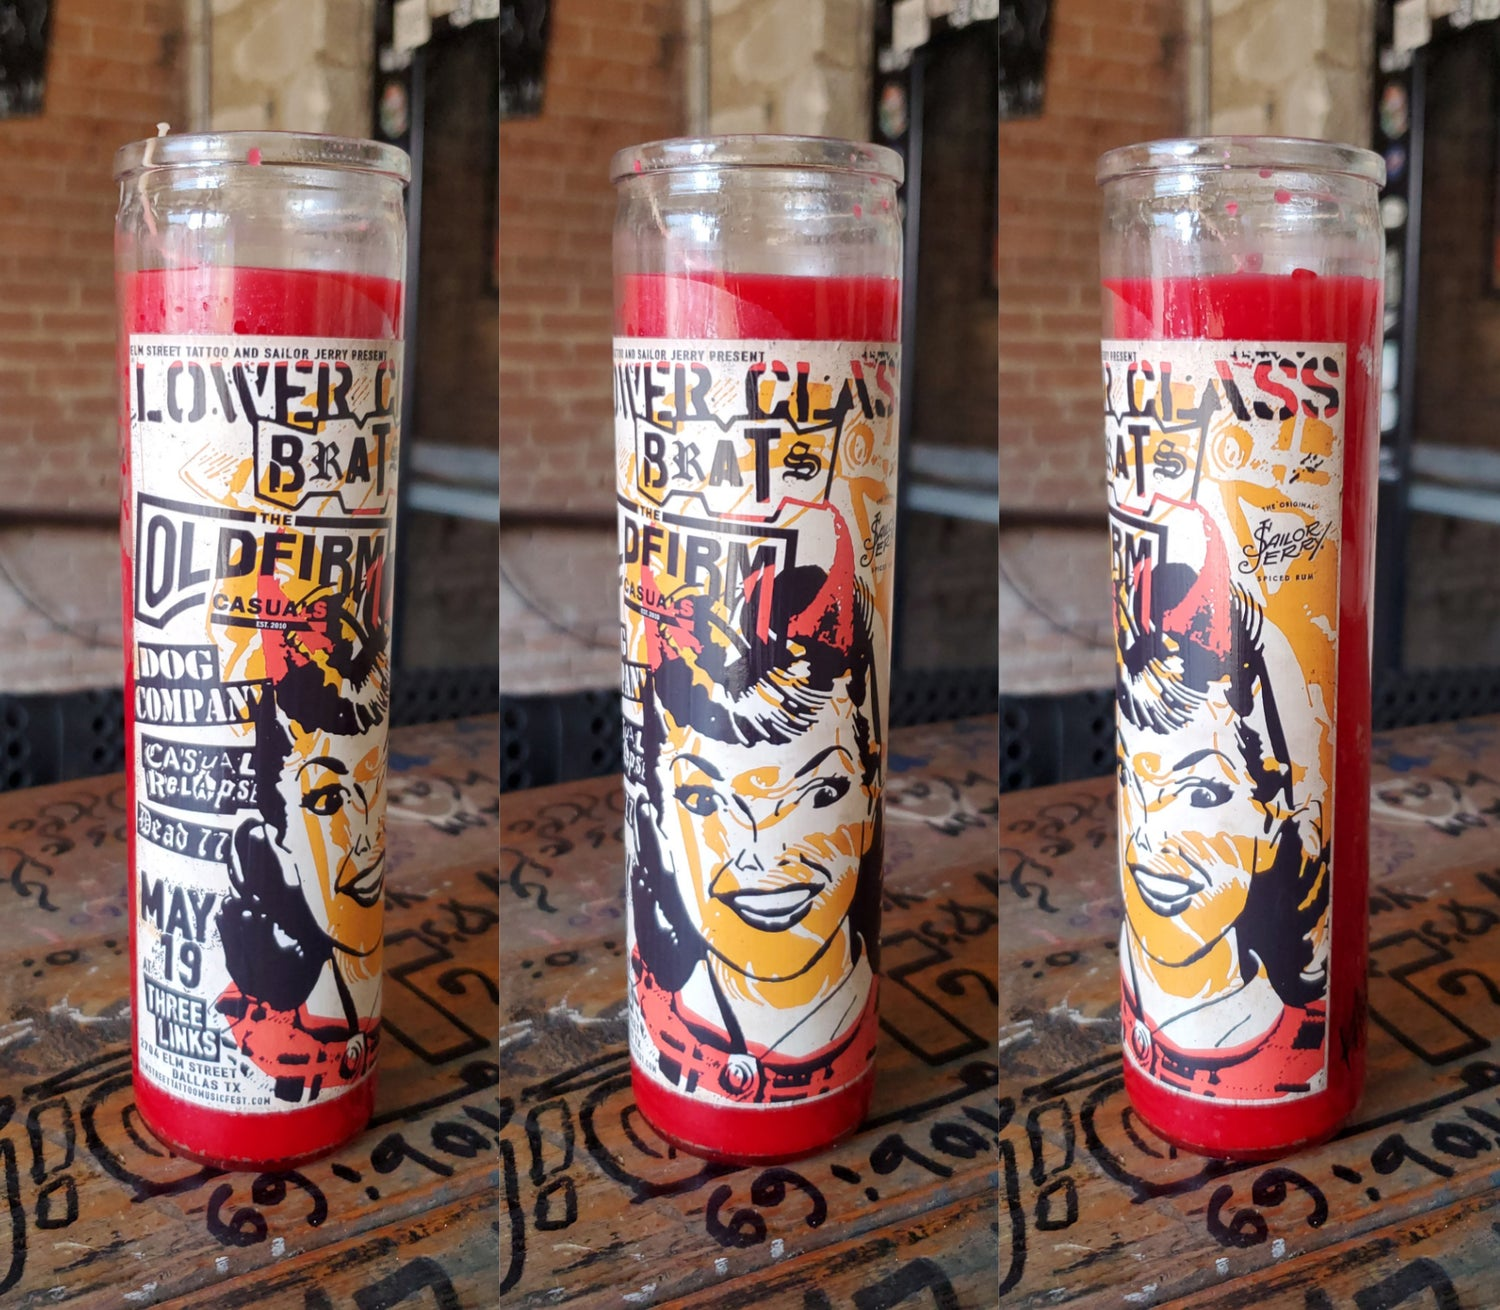 Lower Class Brats, Old Firm Casuals Candle